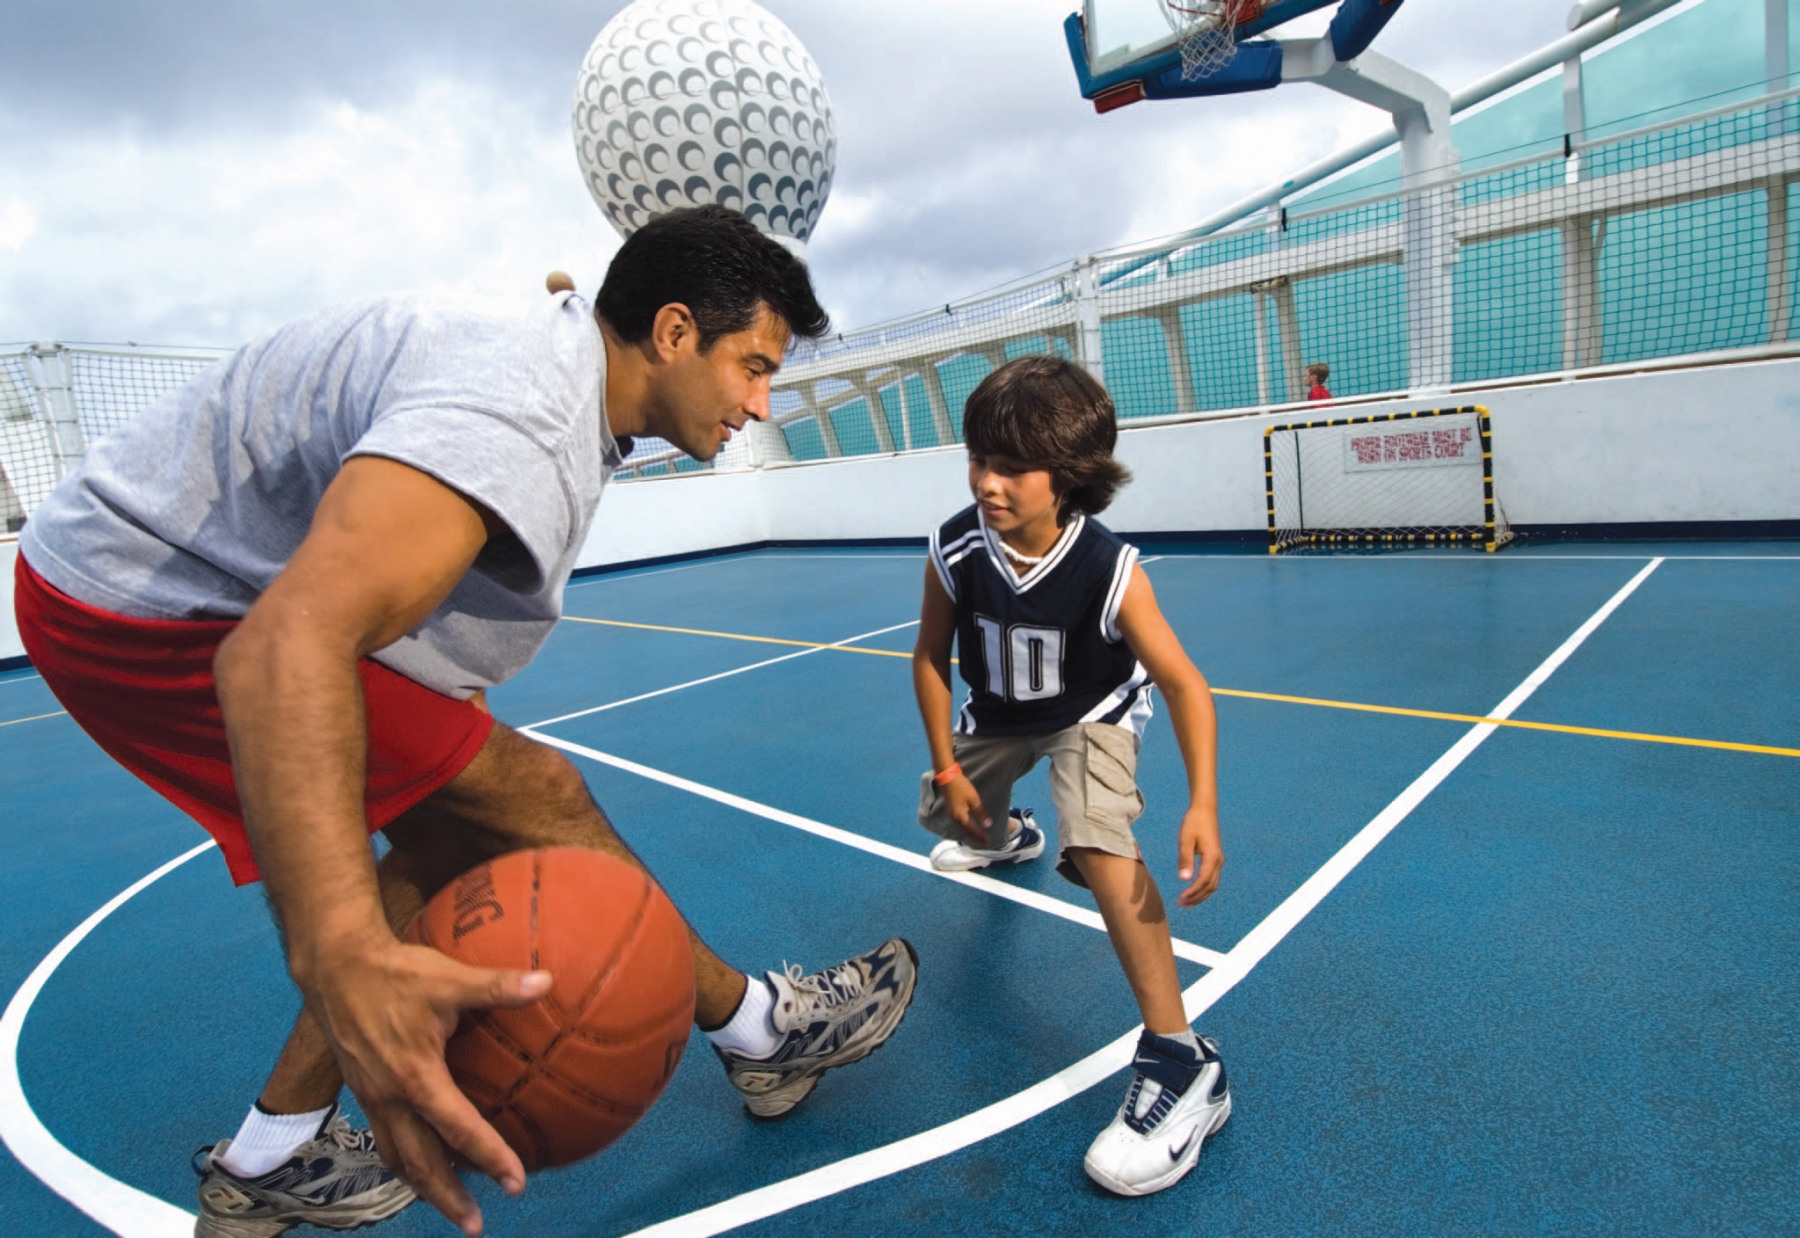 Royal Caribbean International Voyager of the Seas Exterior Hoops Court 3.jpg